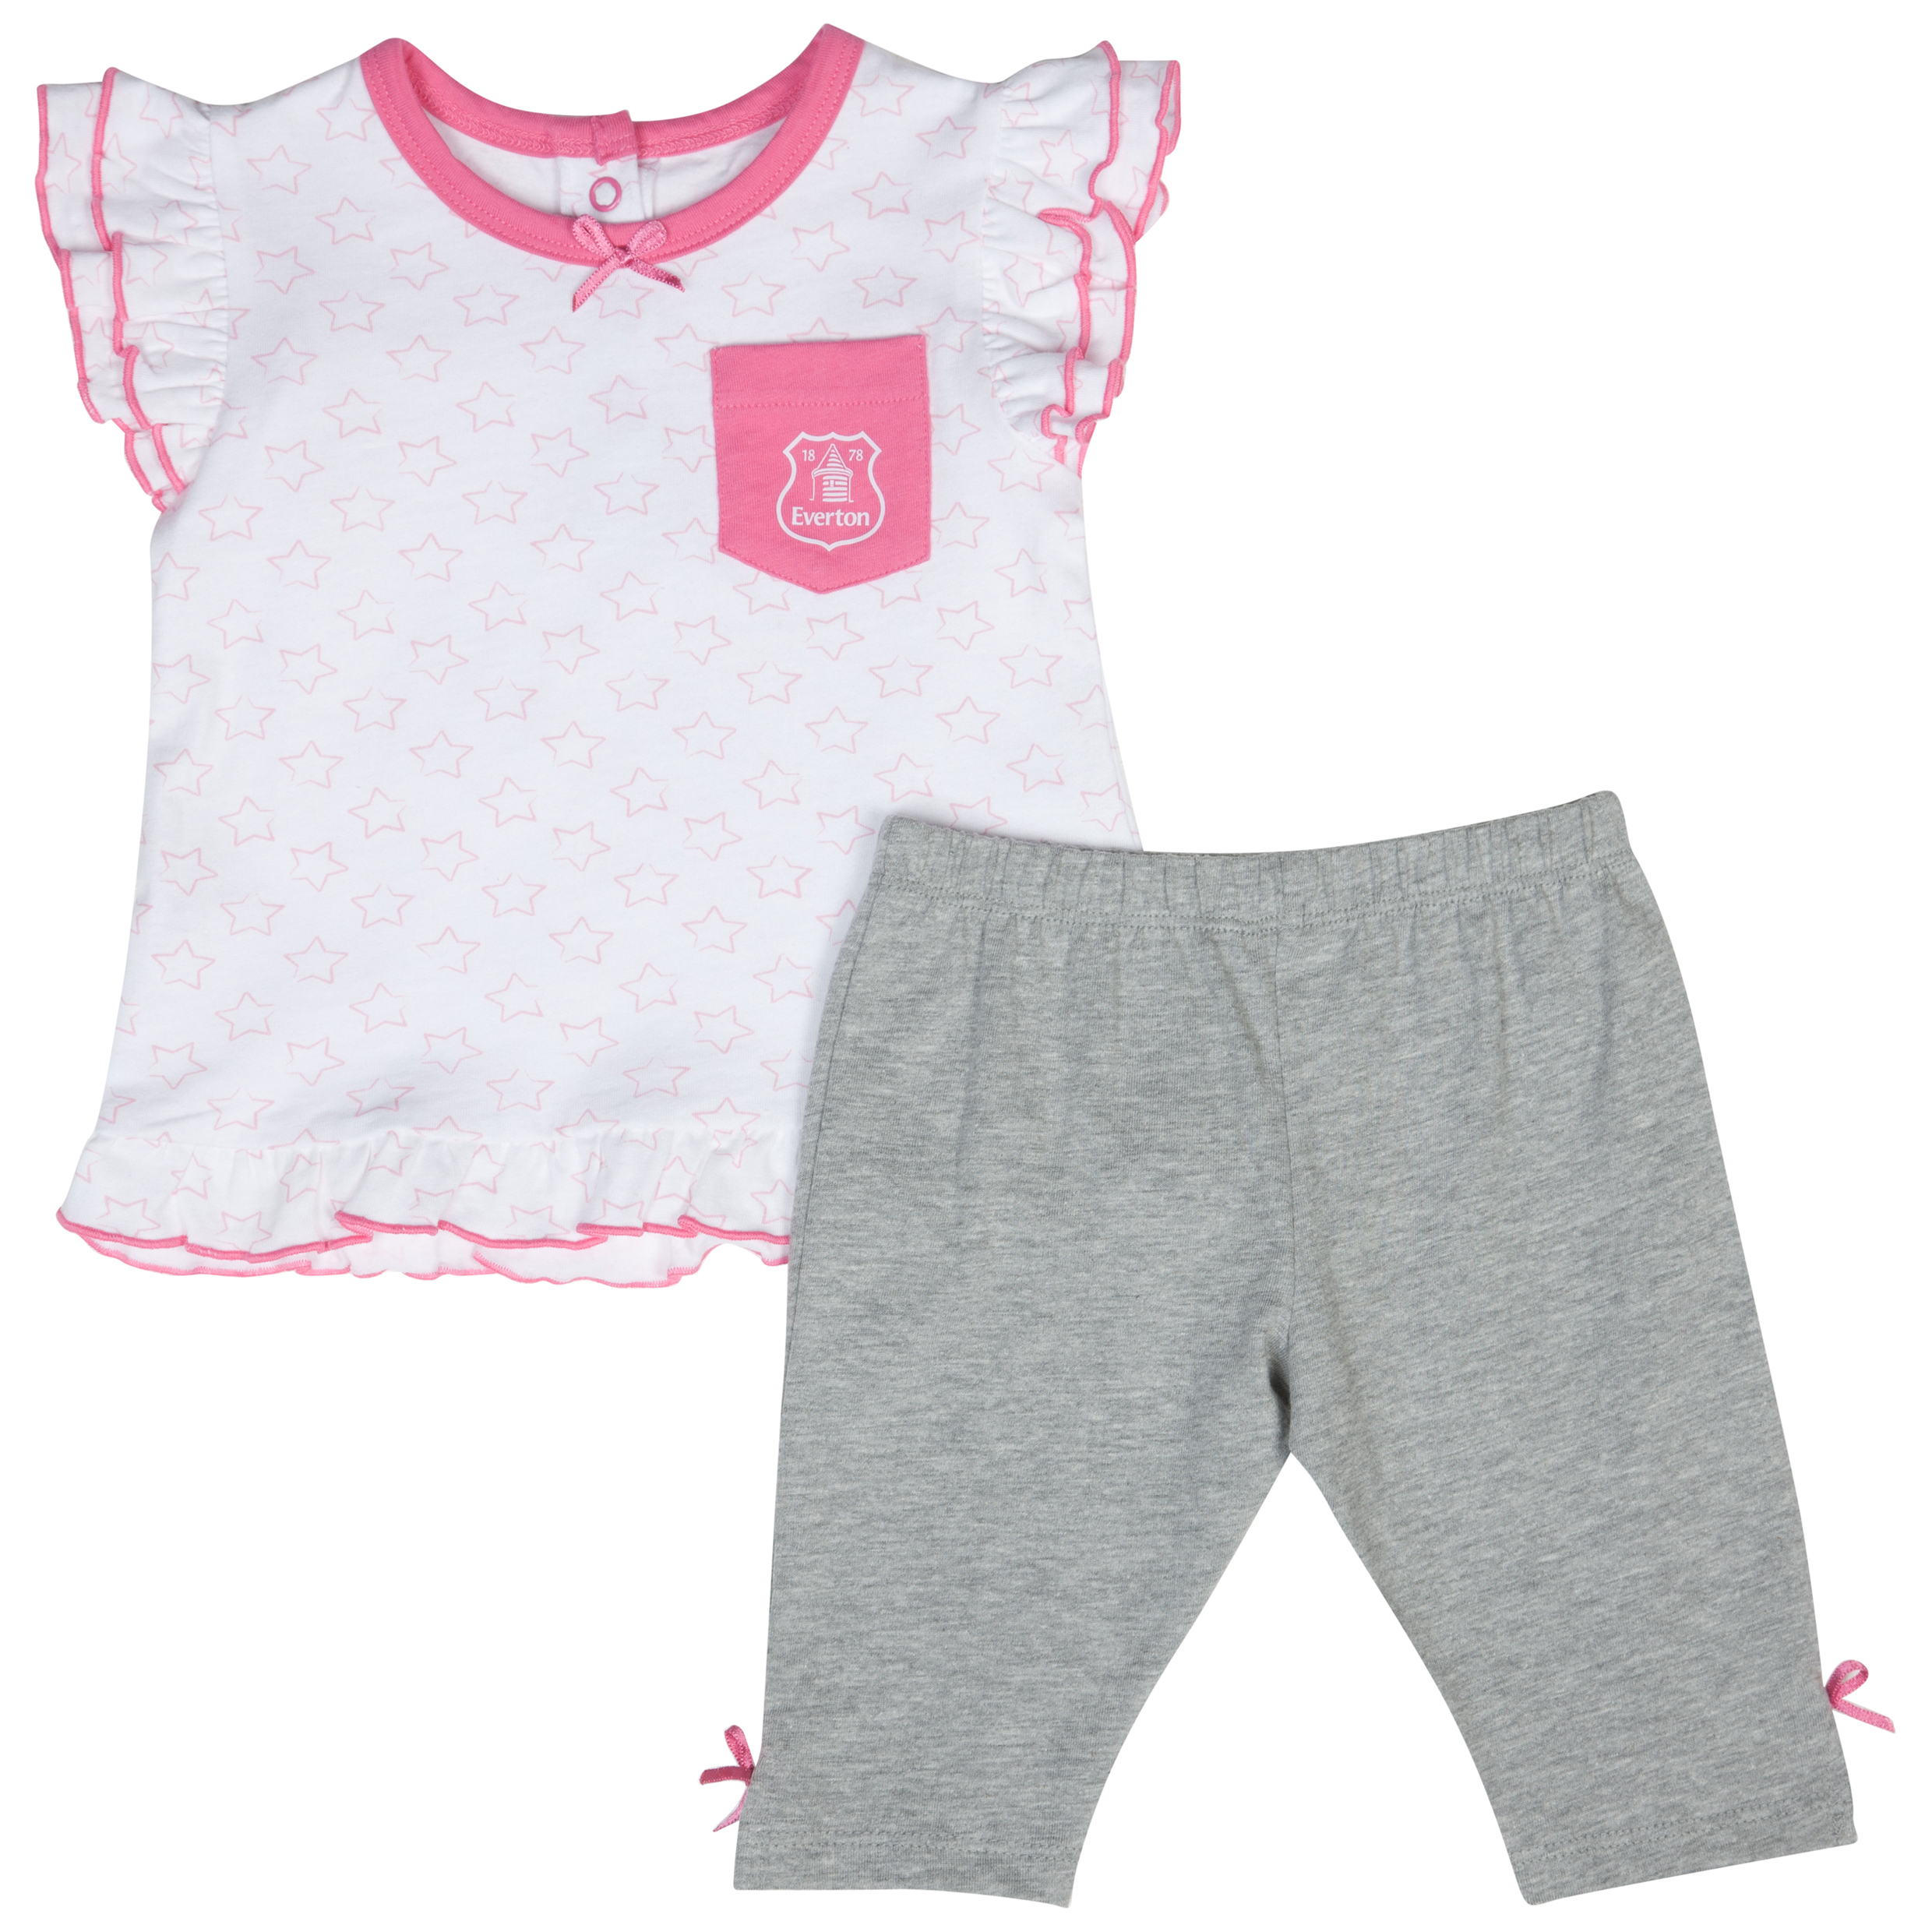 Everton Stars 2 Piece Set - Grey/White/Pink - Baby